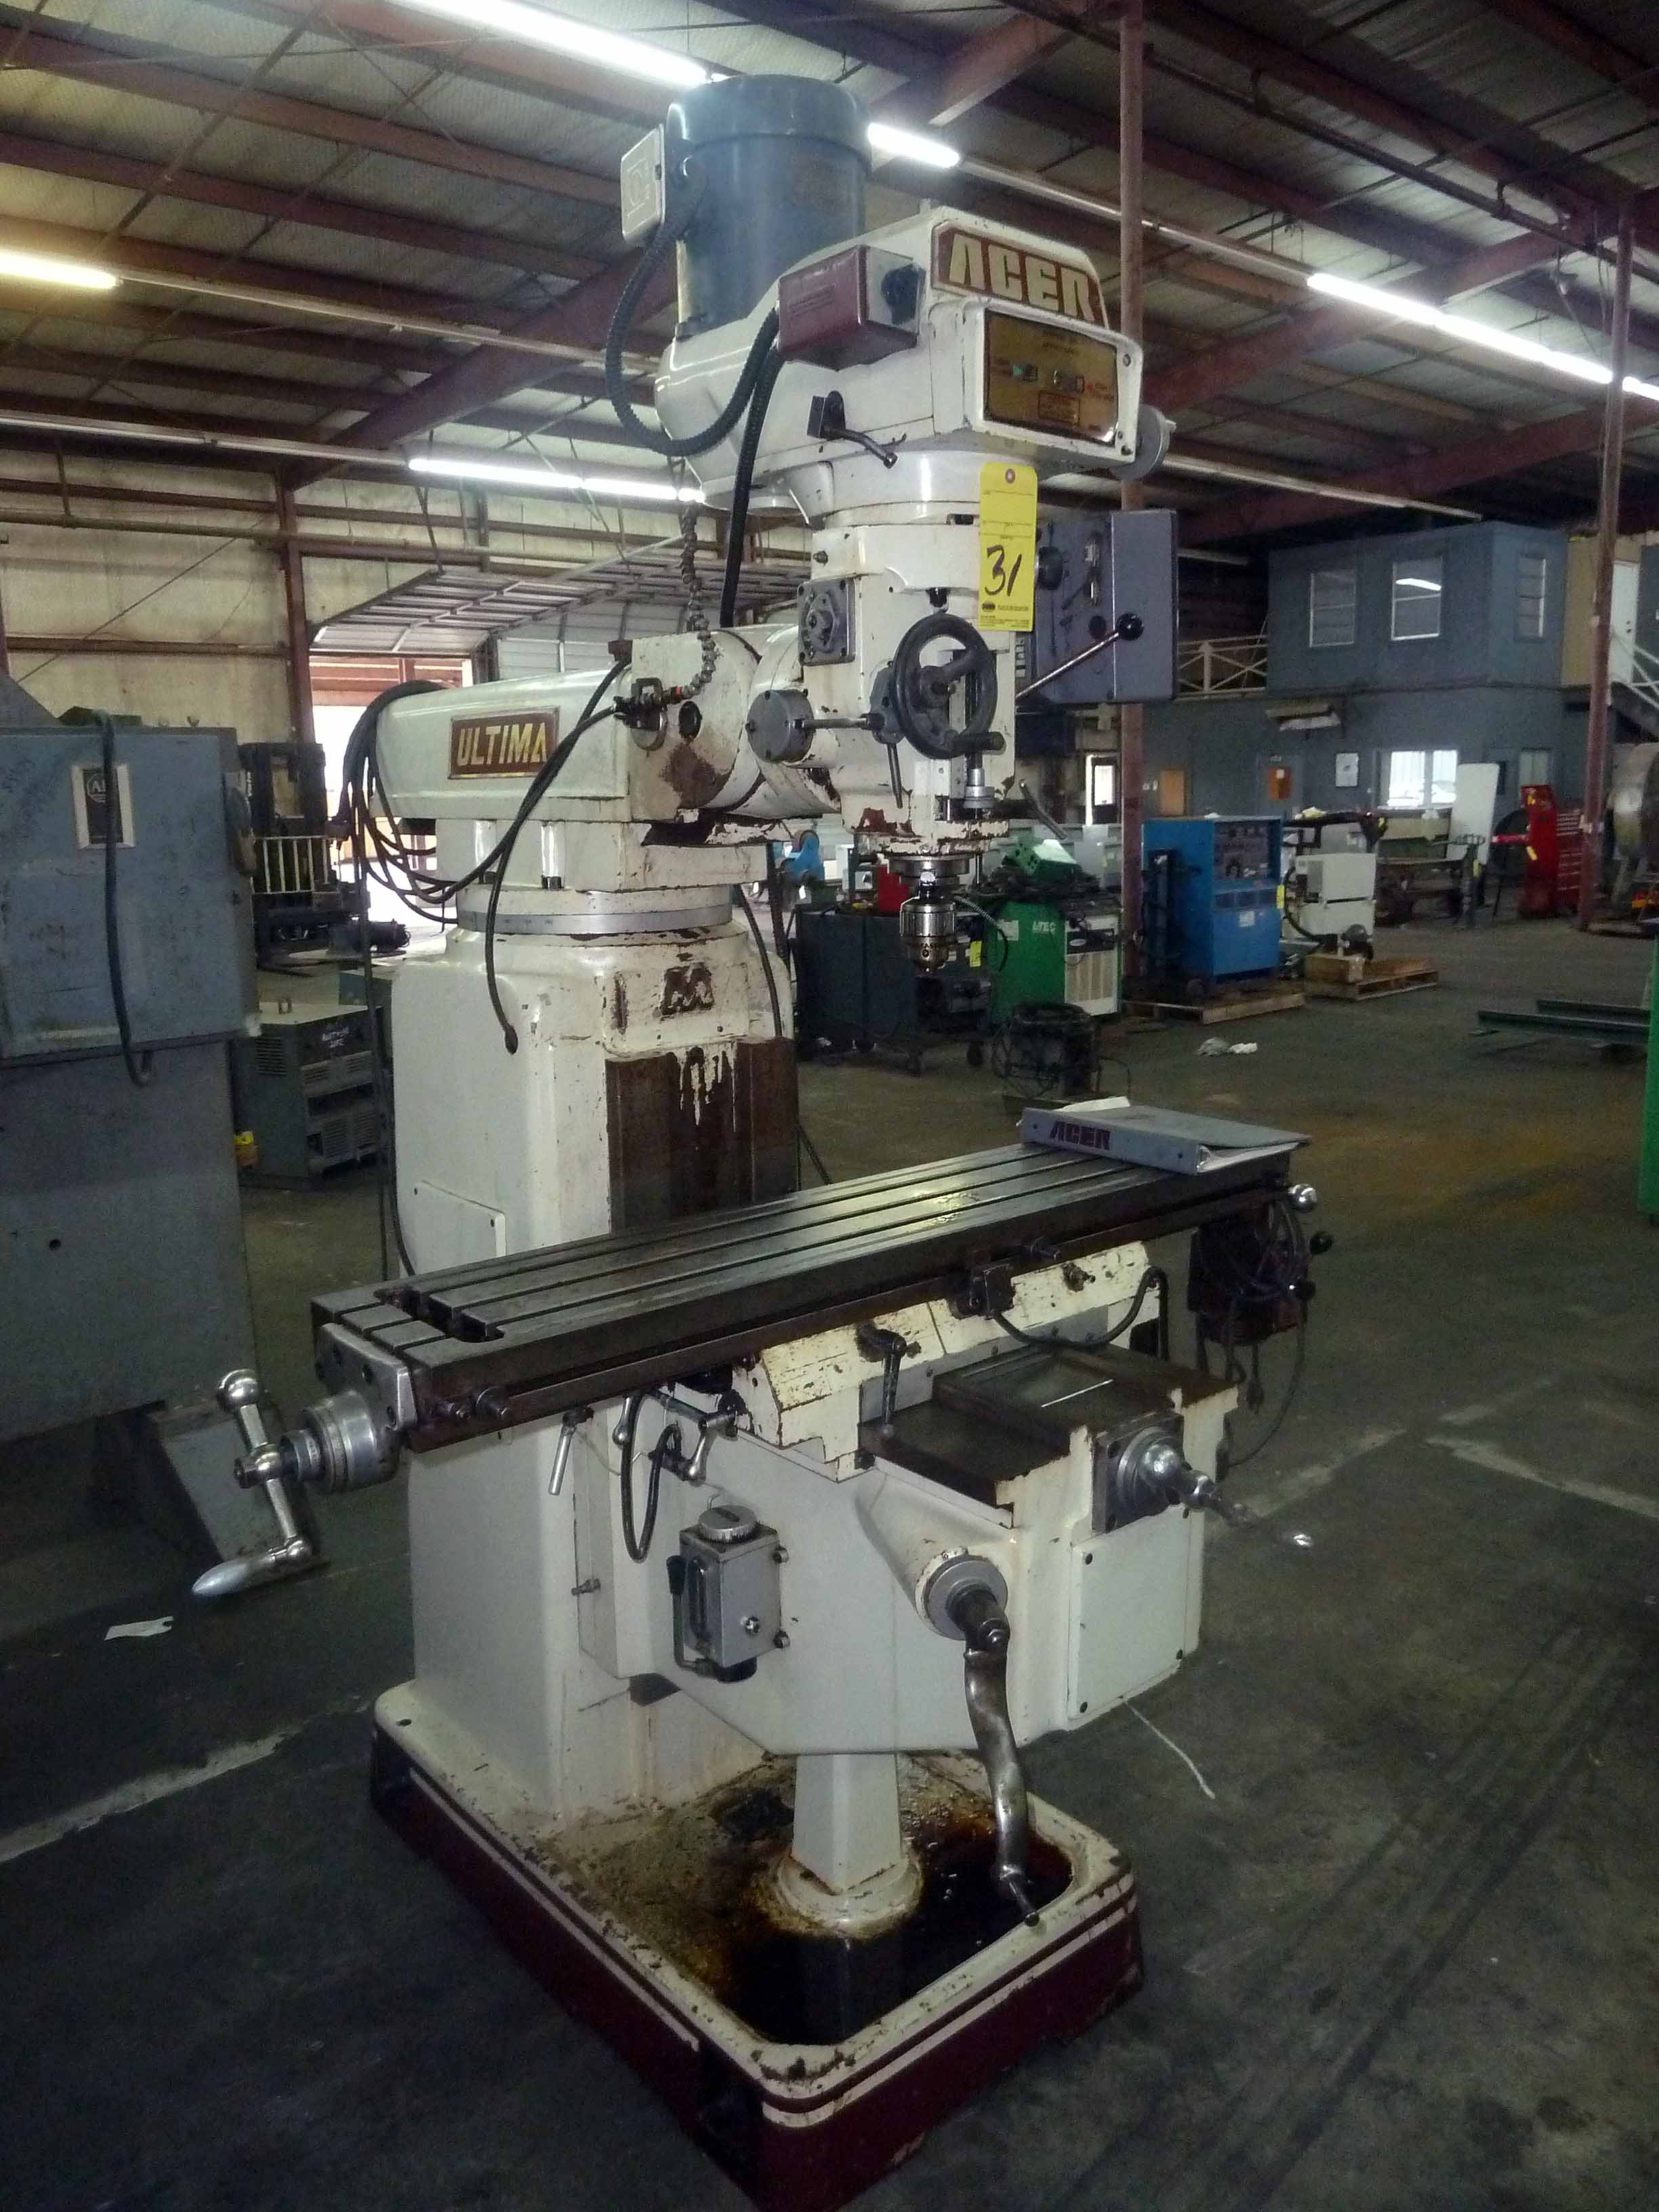 "Lot 31 - VERTICAL TURRET MILL, ACER ULTIMA MDL. 4VK, 10"" x 50"" table, harden & ground ways, variable"